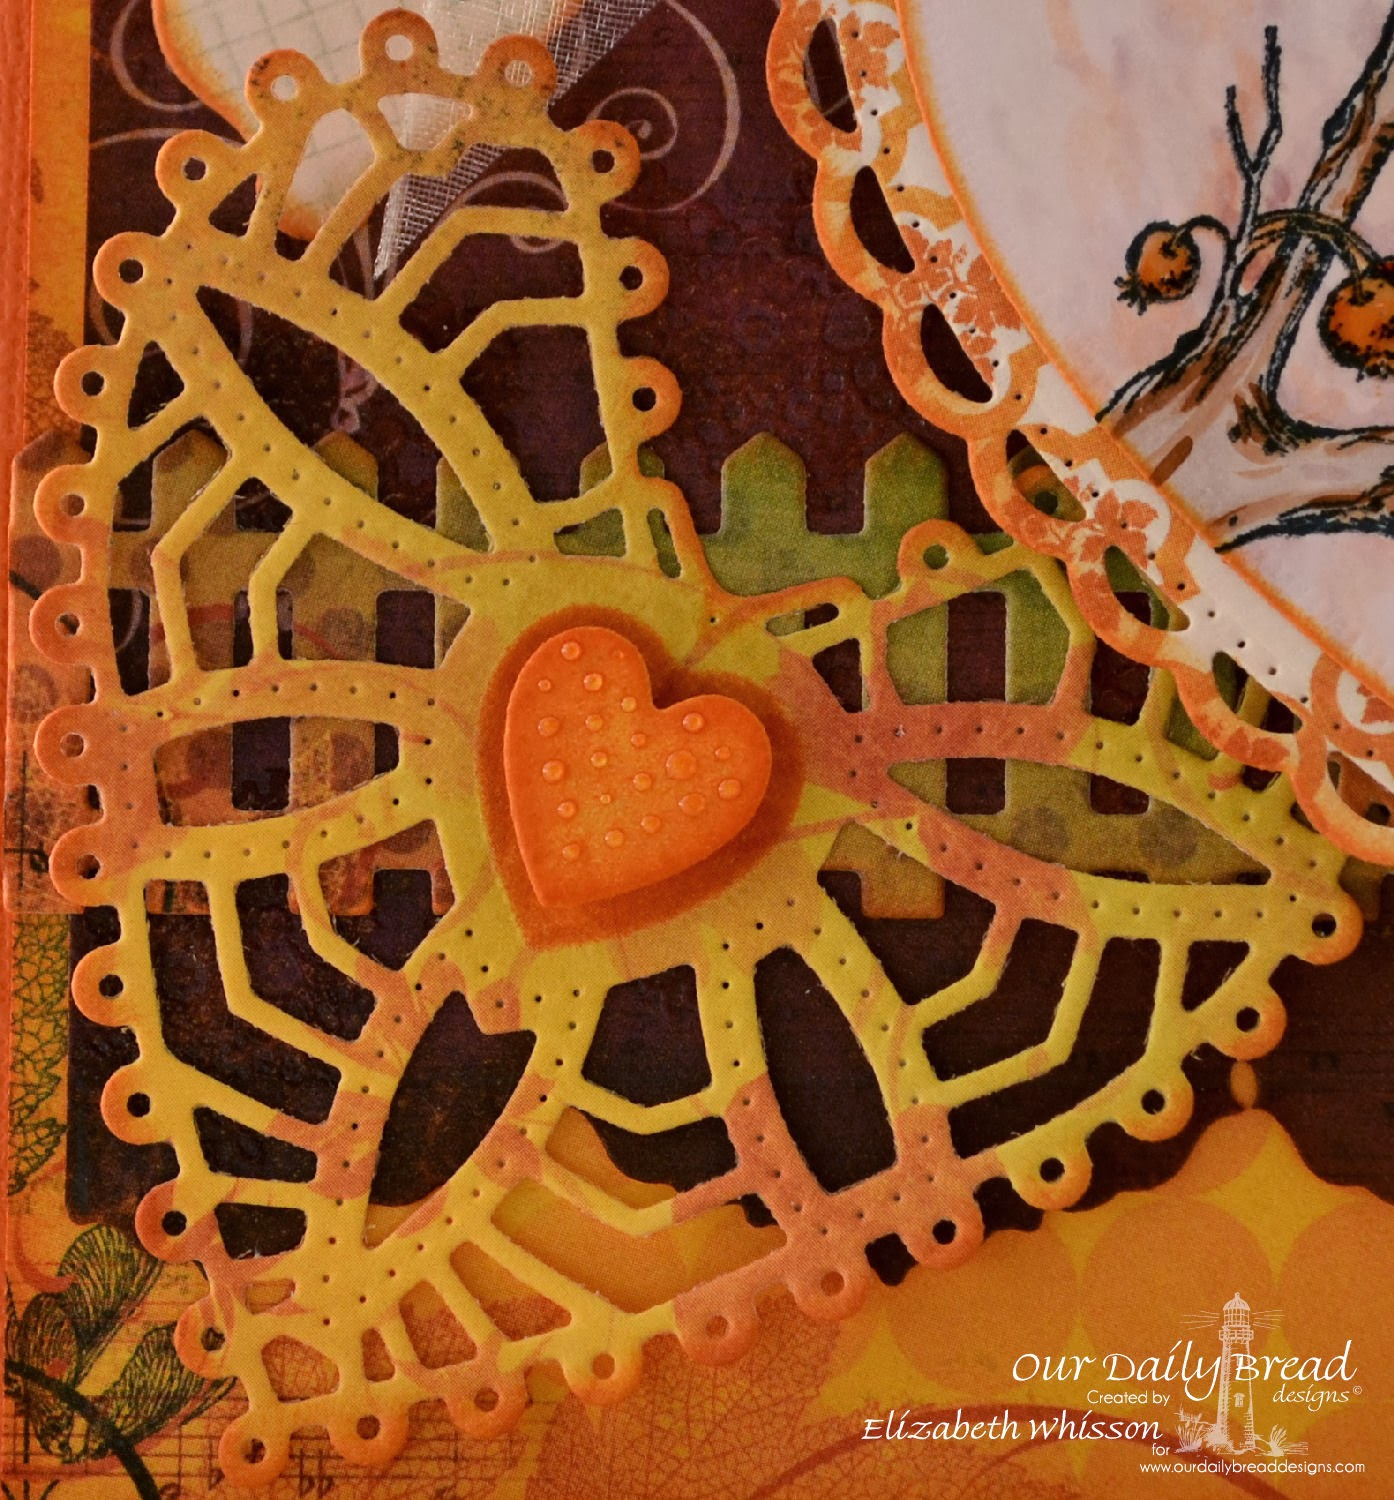 Elizabeth Whisson, Our Daily Bread Designs, Chickadee, Clean Heart, ODBD Fence die, ODBD Ornate Hearts dies, ODBD Ornate Borders and Flowers dies